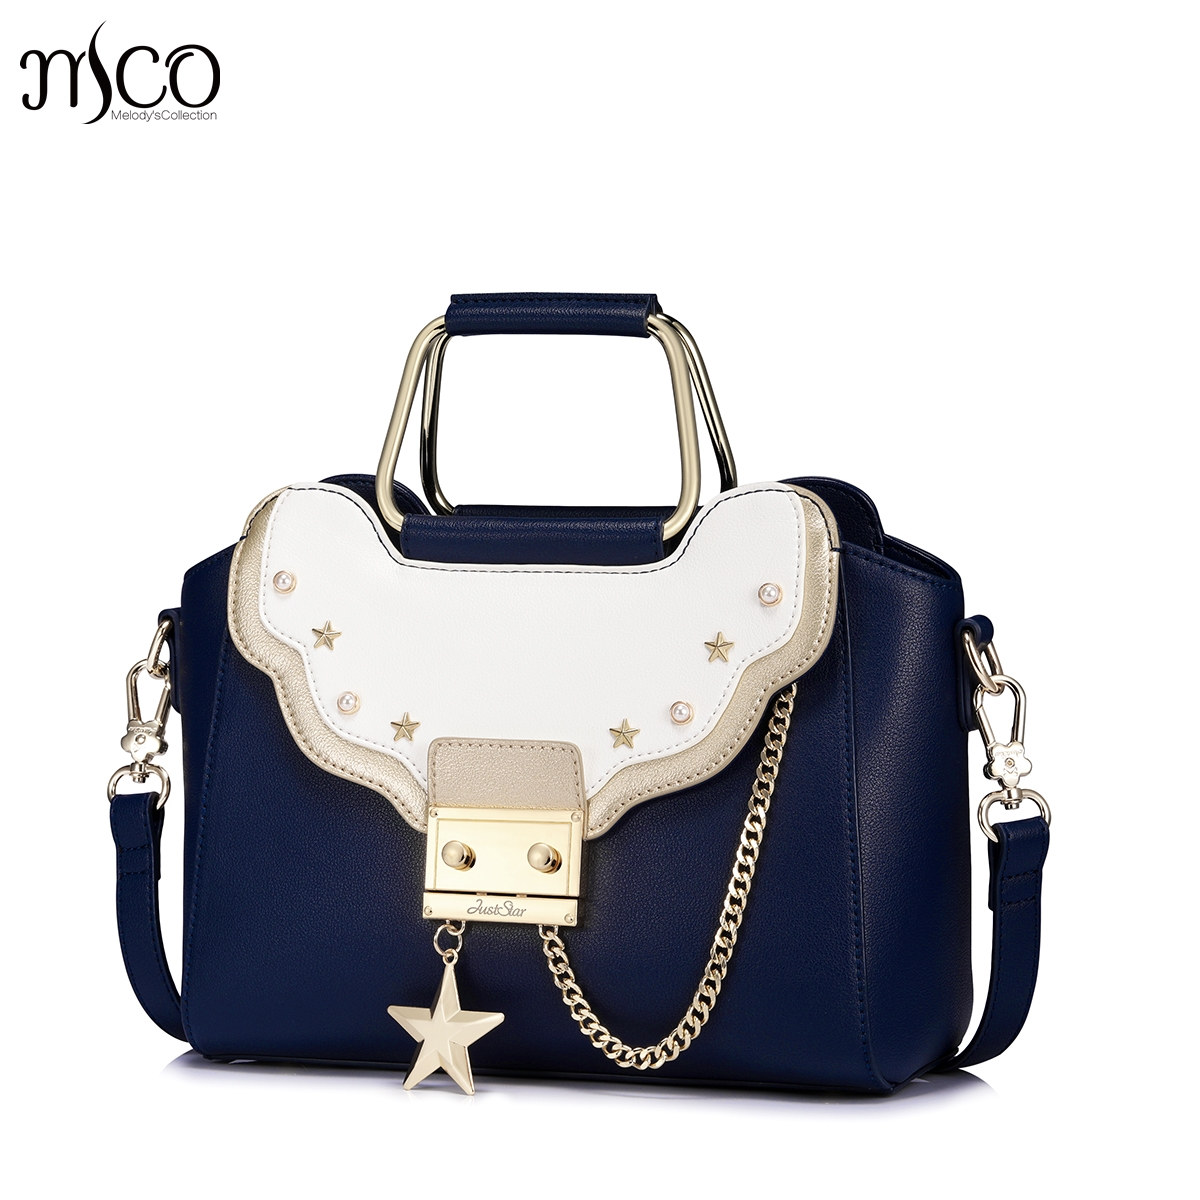 High Quality Brand Star Chains PU Leather Purse Crossbody Shoulder Women Bag Clutch Female Handbags Sac a Main Femme De Marque hobos bags handbags women famous brand female high quality leather shoulder bag women crossbody bag sac a main femme de marque